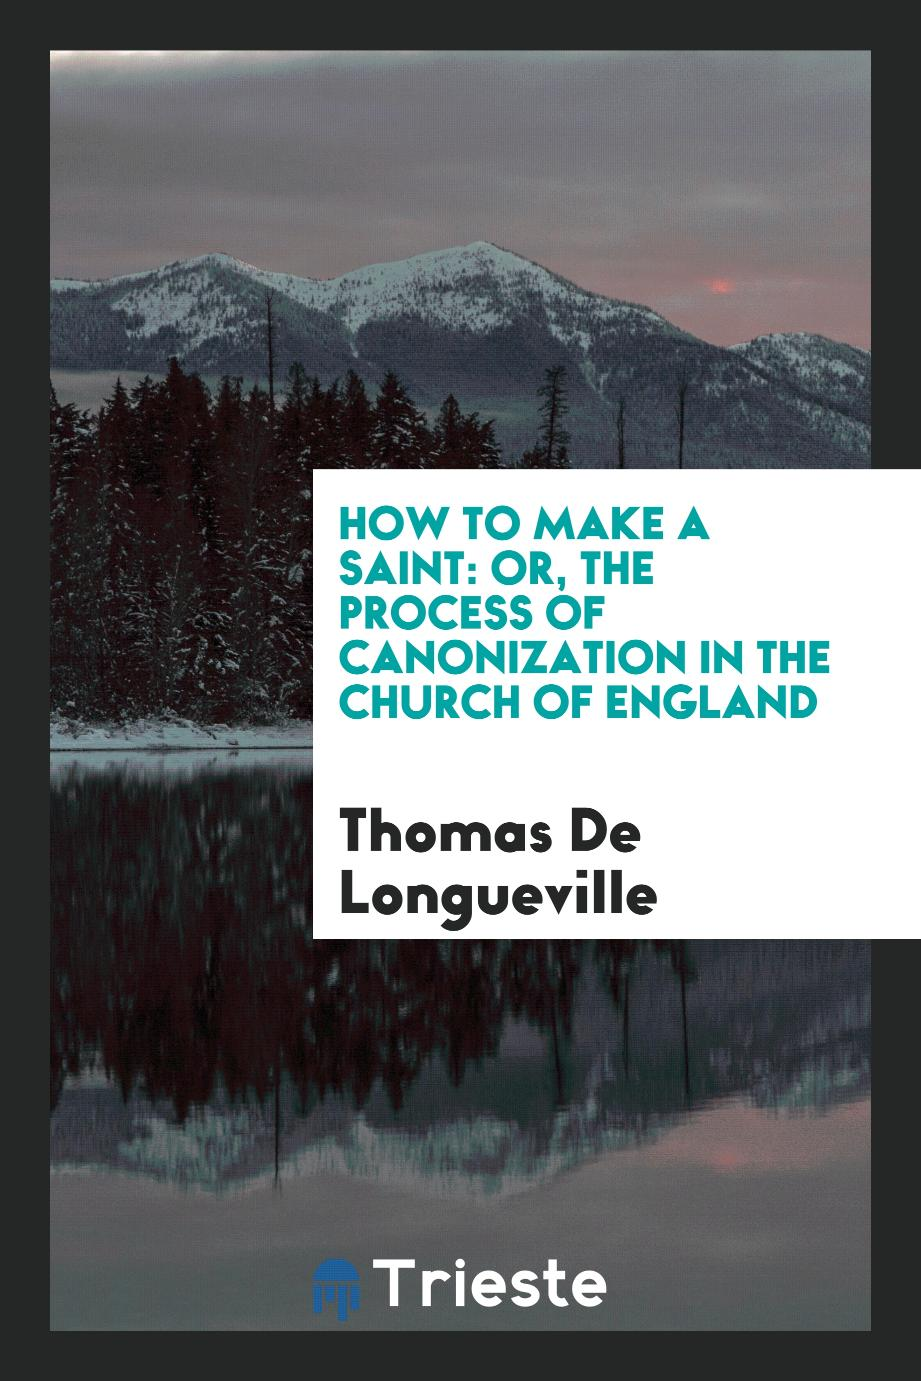 How to Make a Saint: Or, the Process of Canonization in the Church of England